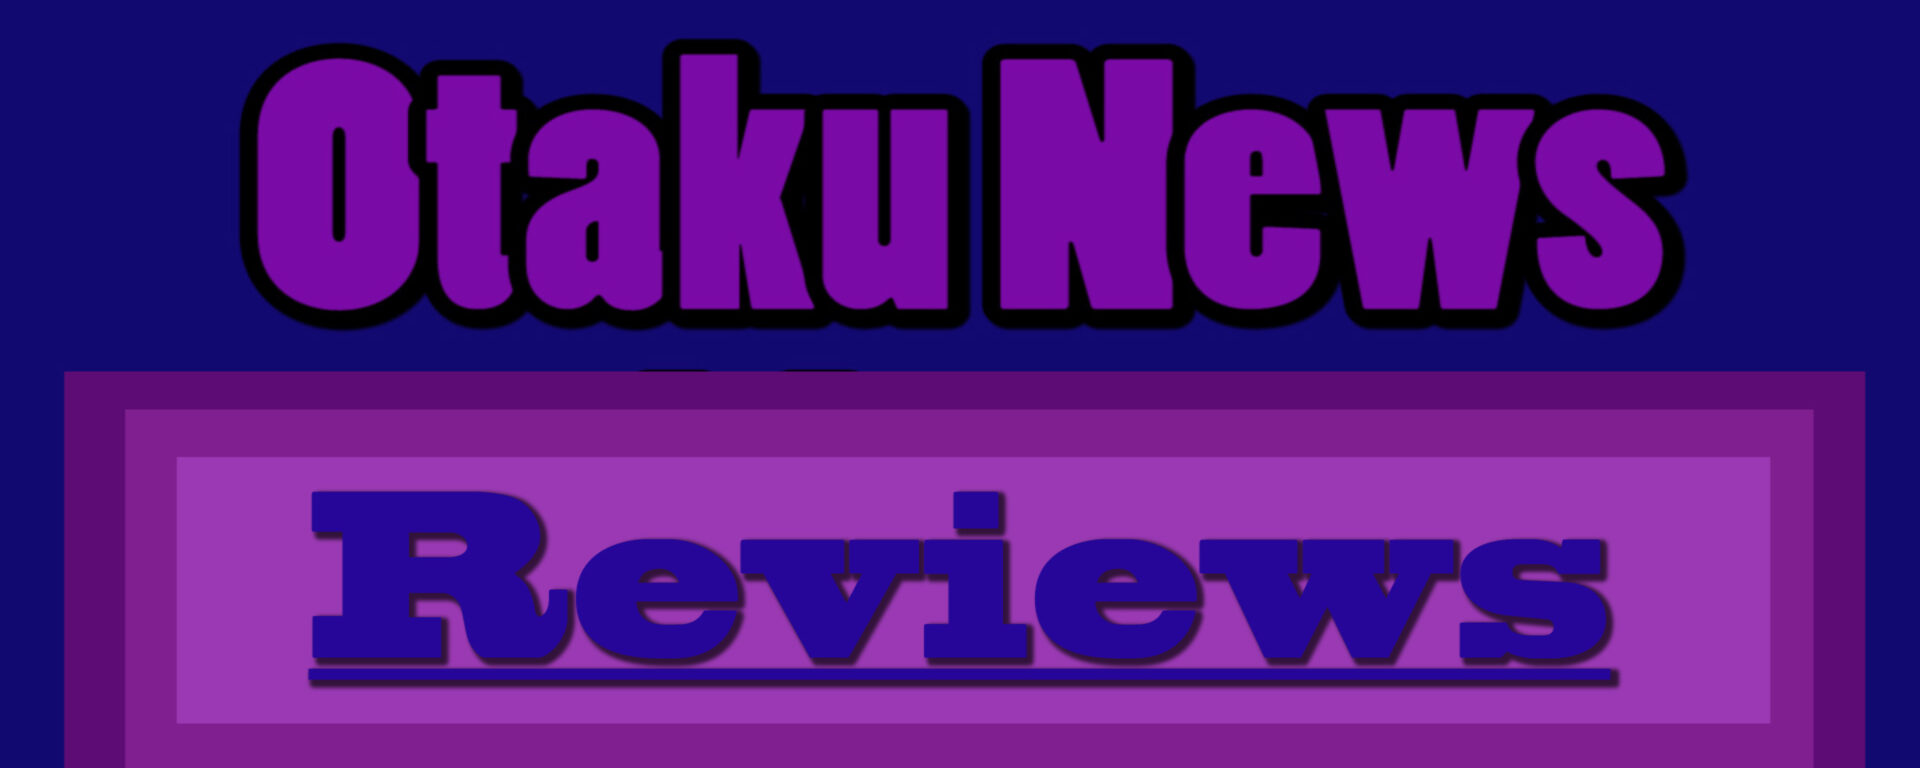 The Magical Girls of a Cat God by Isaac Crowe – Otaku News Reviews